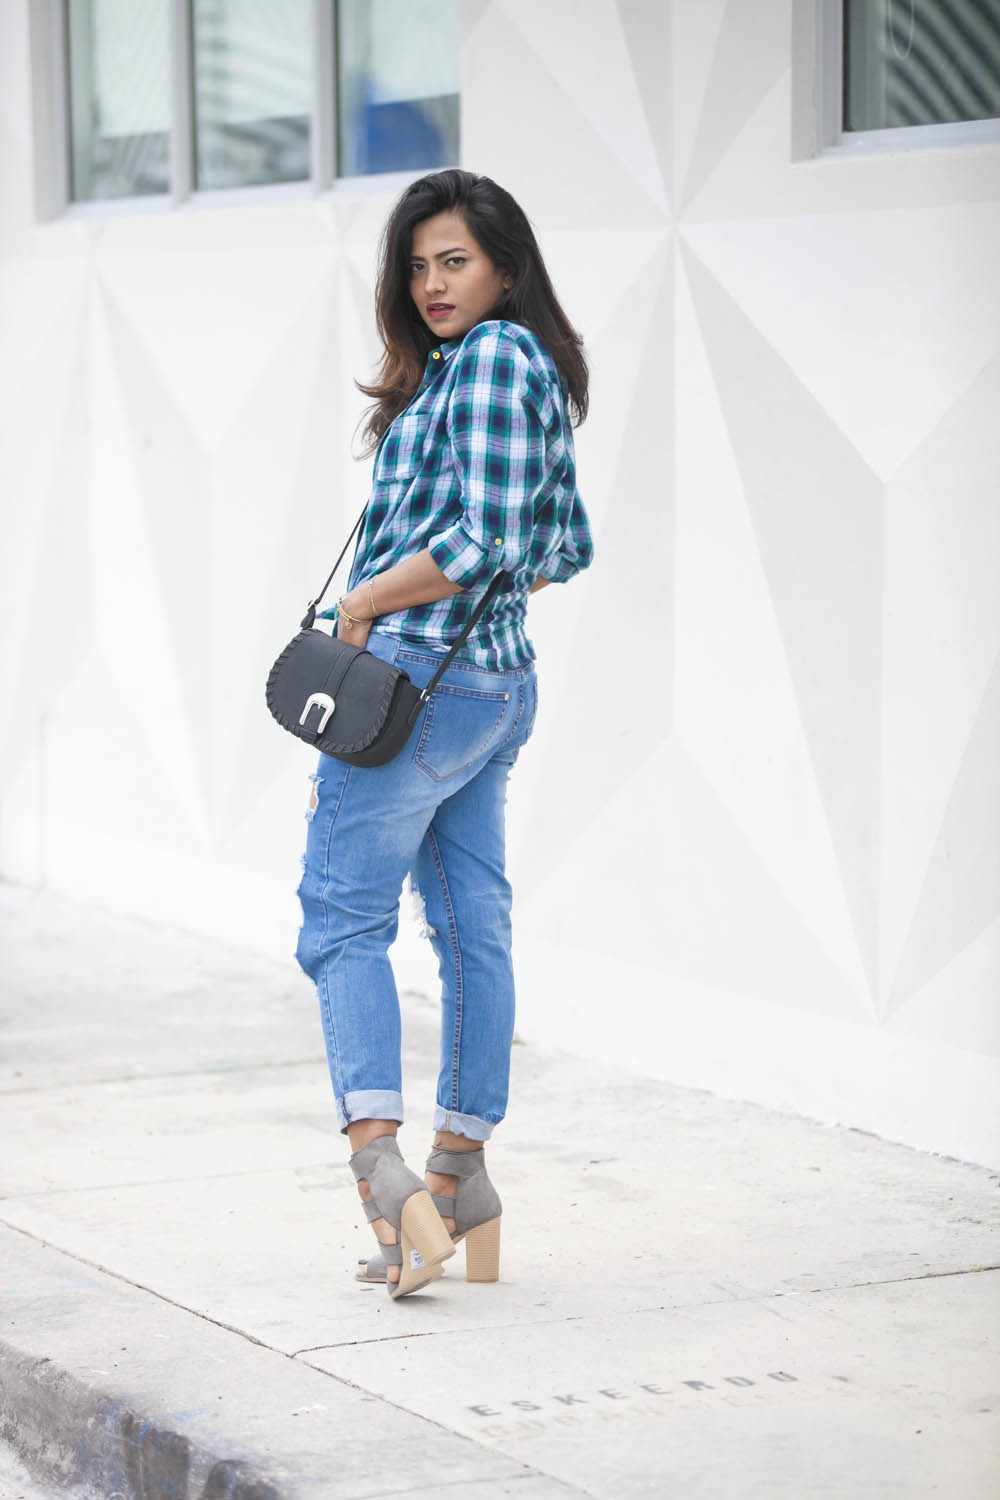 Plaid Shirt Spring Outfit